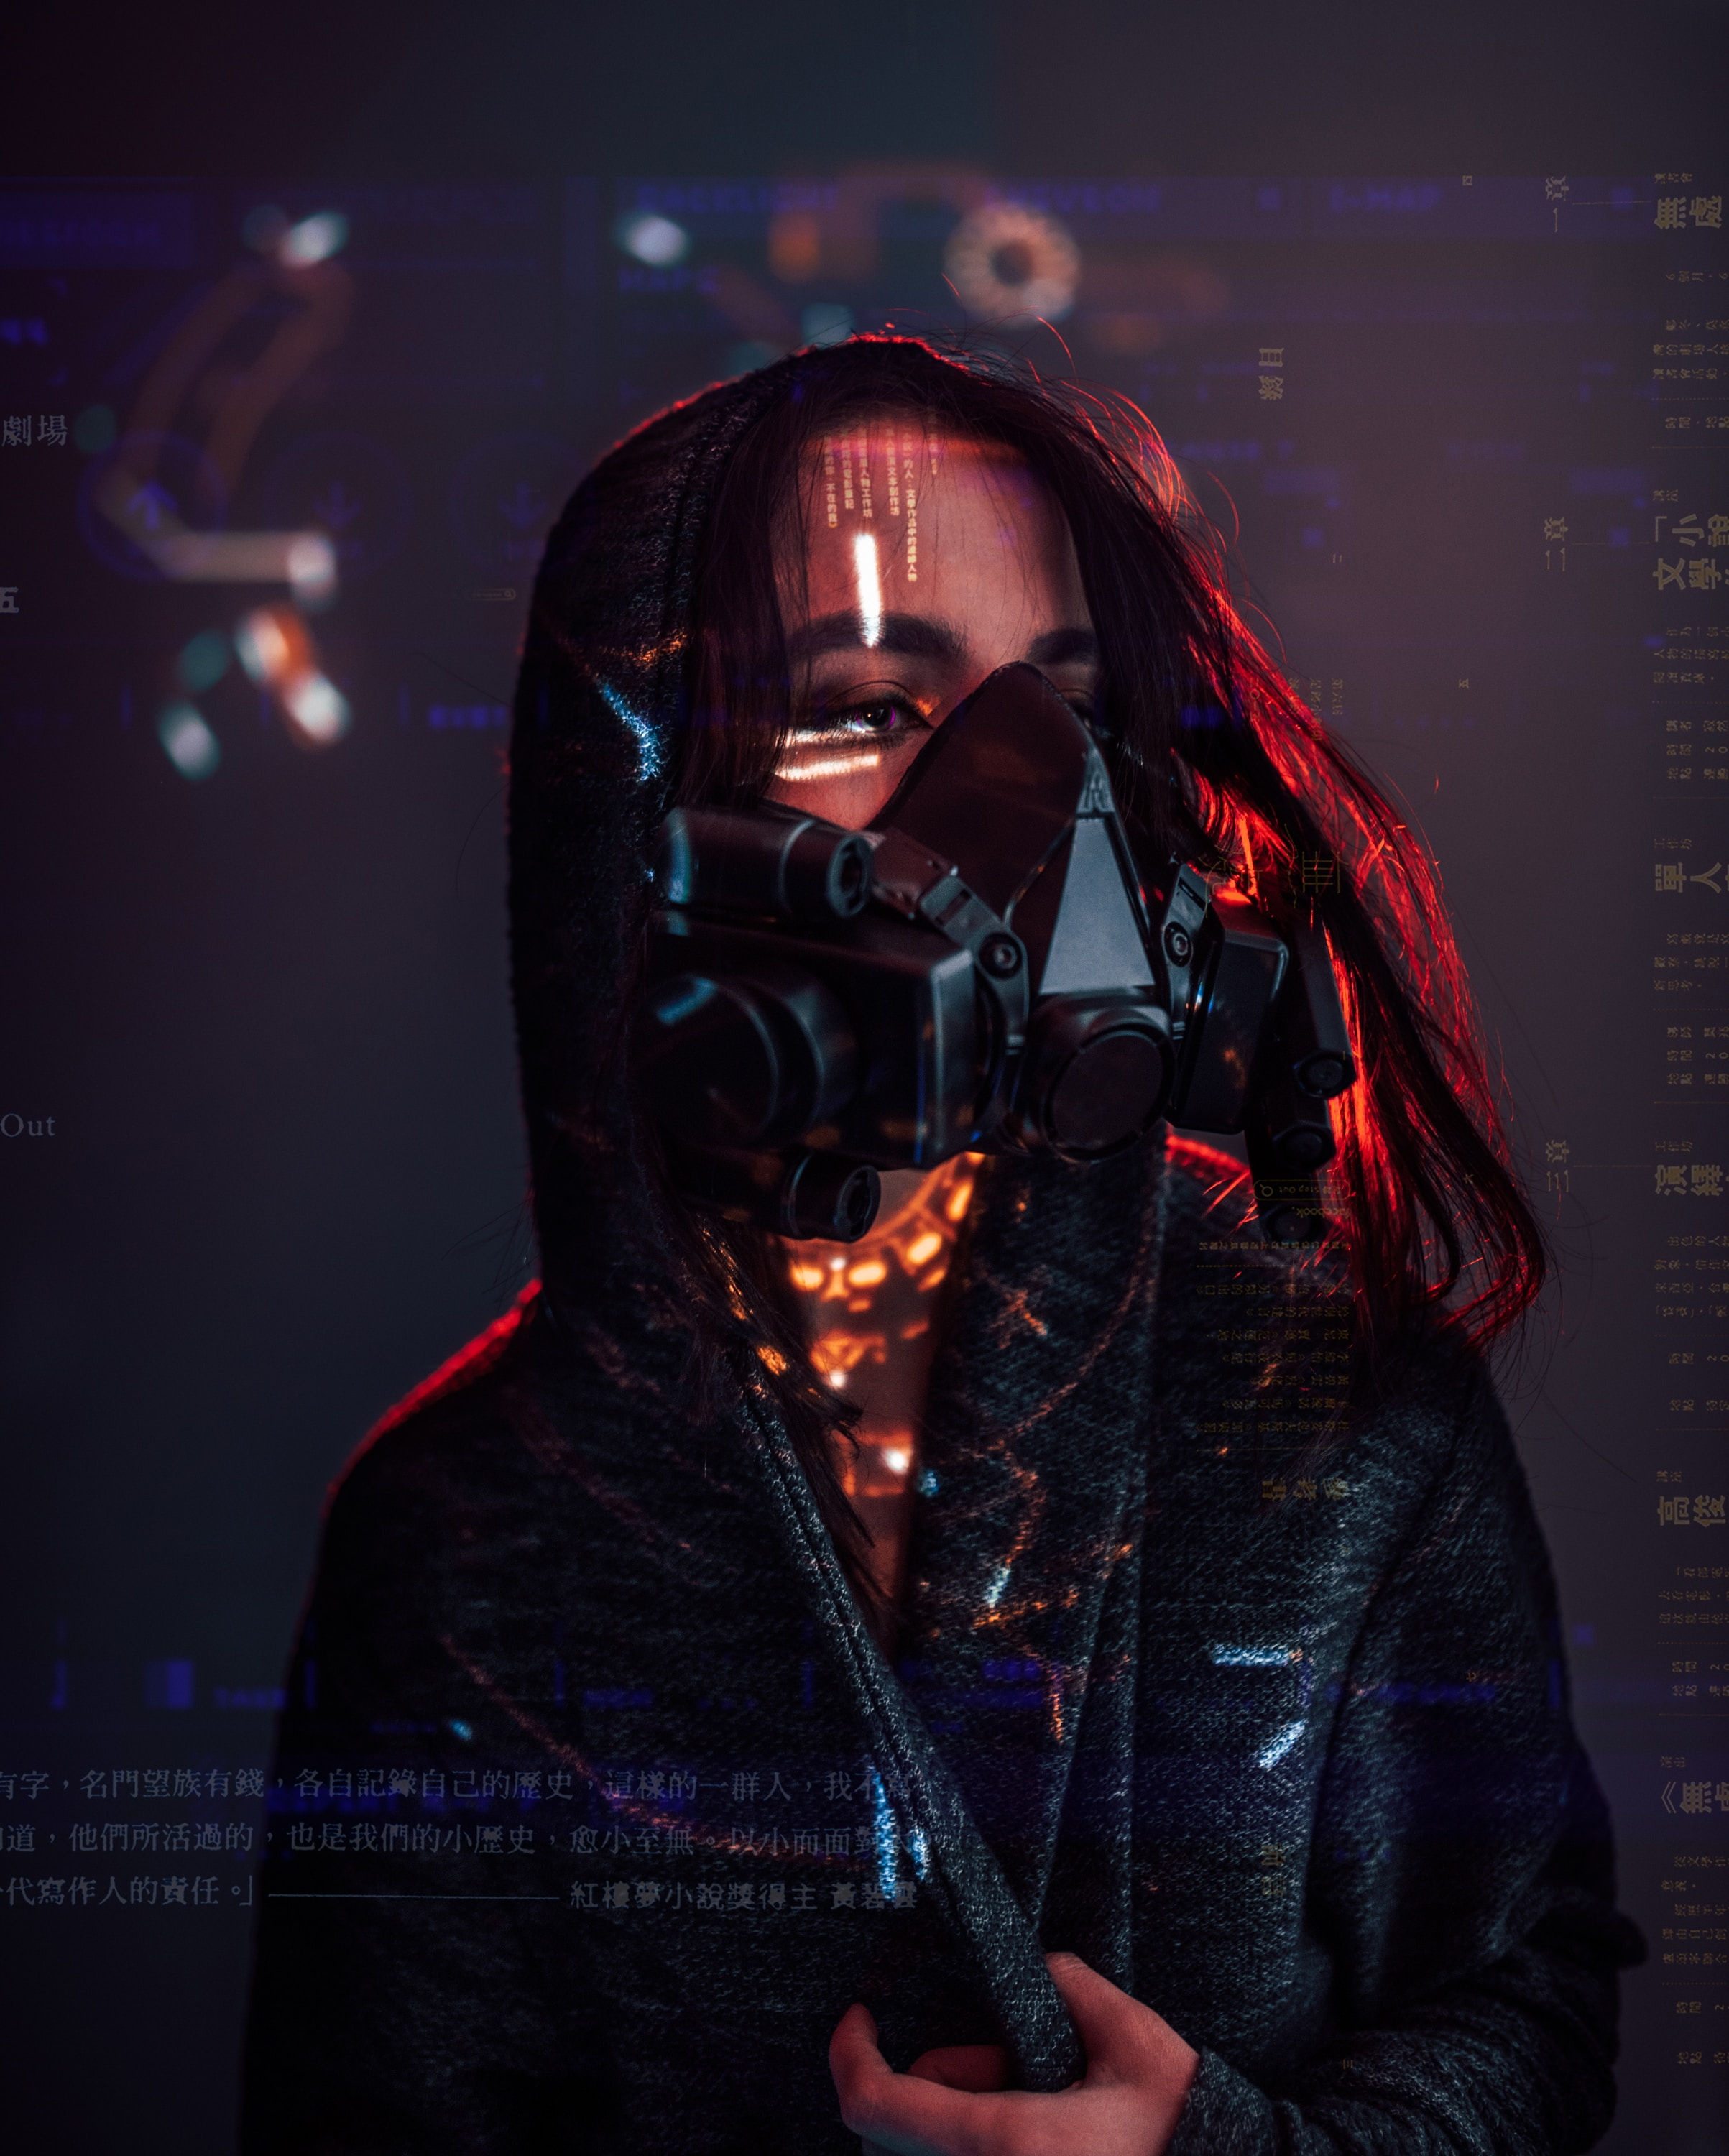 80850 Screensavers and Wallpapers Sci-Fi for phone. Download Miscellanea, Miscellaneous, Cyberpunk, Girl, Sci-Fi, Hologram, Respirator pictures for free